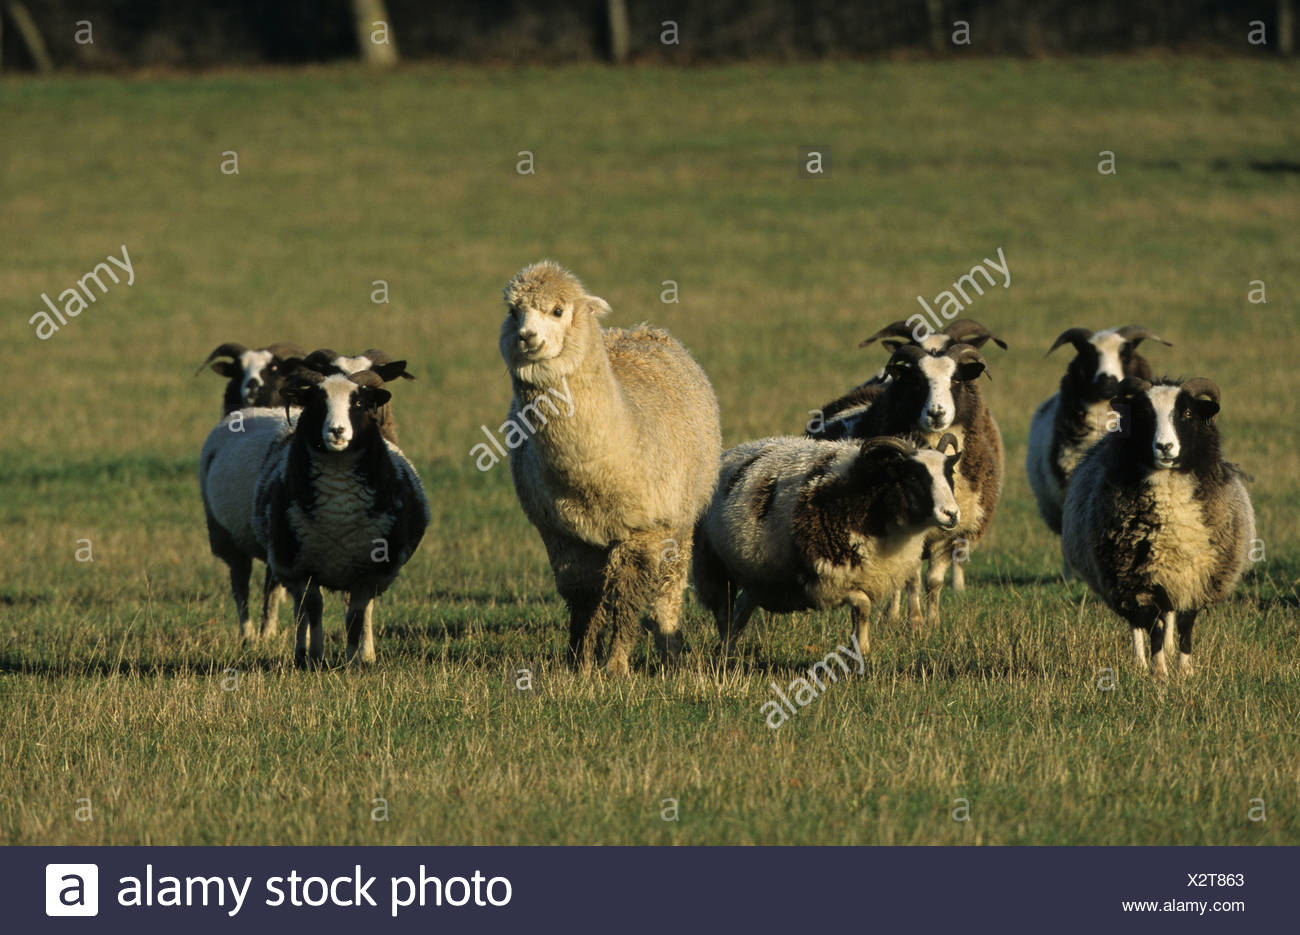 Alpaca (Lama pacos) adult, standing with Jacob Sheep flock in pasture, England - Stock Image